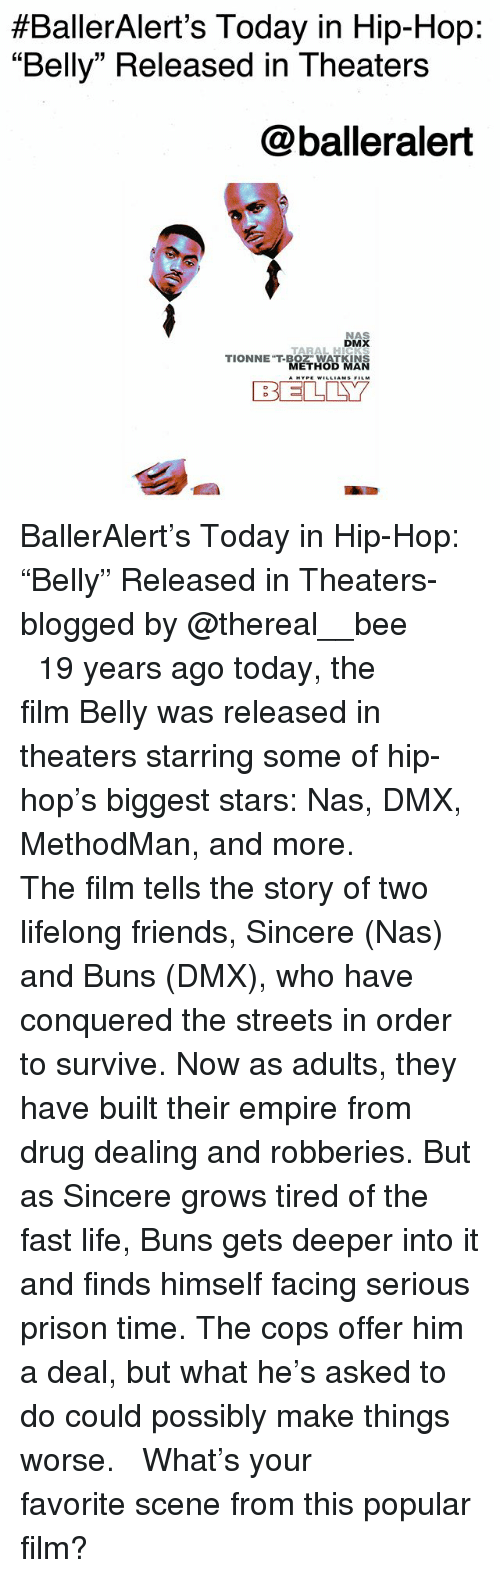 """DMX:  #BallerAlert's Today in Hip-Hop:  """"Belly"""" Released in Theaters  @balleralert  NAS  DMX  TARAL HICKS  TIONNET-BOZ"""" WATKINS  METHOD MAN  BELLY BallerAlert's Today in Hip-Hop: """"Belly"""" Released in Theaters-blogged by @thereal__bee ⠀⠀⠀⠀⠀⠀⠀⠀⠀ ⠀⠀ 19 years ago today, the film Belly was released in theaters starring some of hip-hop's biggest stars: Nas, DMX, MethodMan, and more. ⠀⠀⠀⠀⠀⠀⠀⠀⠀ ⠀⠀ The film tells the story of two lifelong friends, Sincere (Nas) and Buns (DMX), who have conquered the streets in order to survive. Now as adults, they have built their empire from drug dealing and robberies. But as Sincere grows tired of the fast life, Buns gets deeper into it and finds himself facing serious prison time. The cops offer him a deal, but what he's asked to do could possibly make things worse. ⠀⠀⠀⠀⠀⠀⠀⠀⠀ ⠀⠀ What's your favorite scene from this popular film?"""